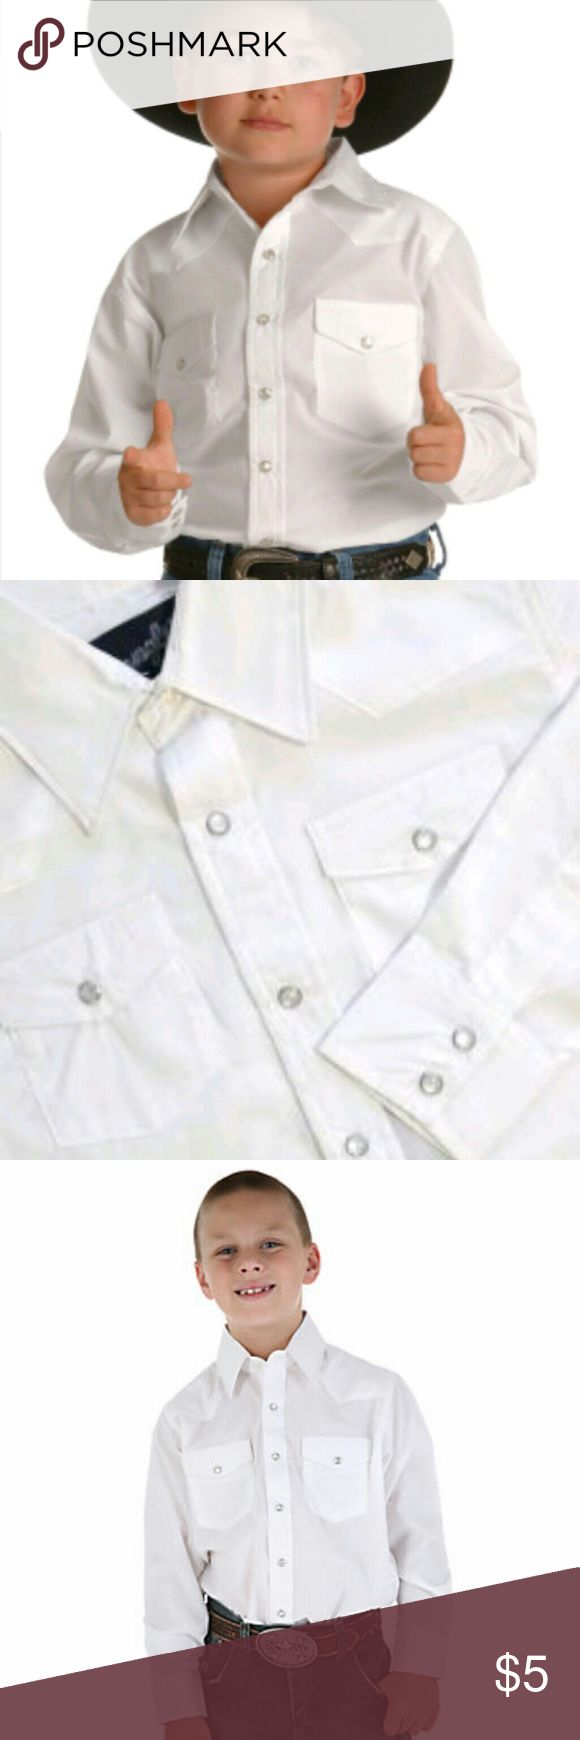 White Long Sleeved Snap Button Down Wrangler Shirt Size 2t Long Sleeved Collared Snap Buttons Down the front and on Sleeves White Wrangler Shirt Wrangler Shirts & Tops Button Down Shirts